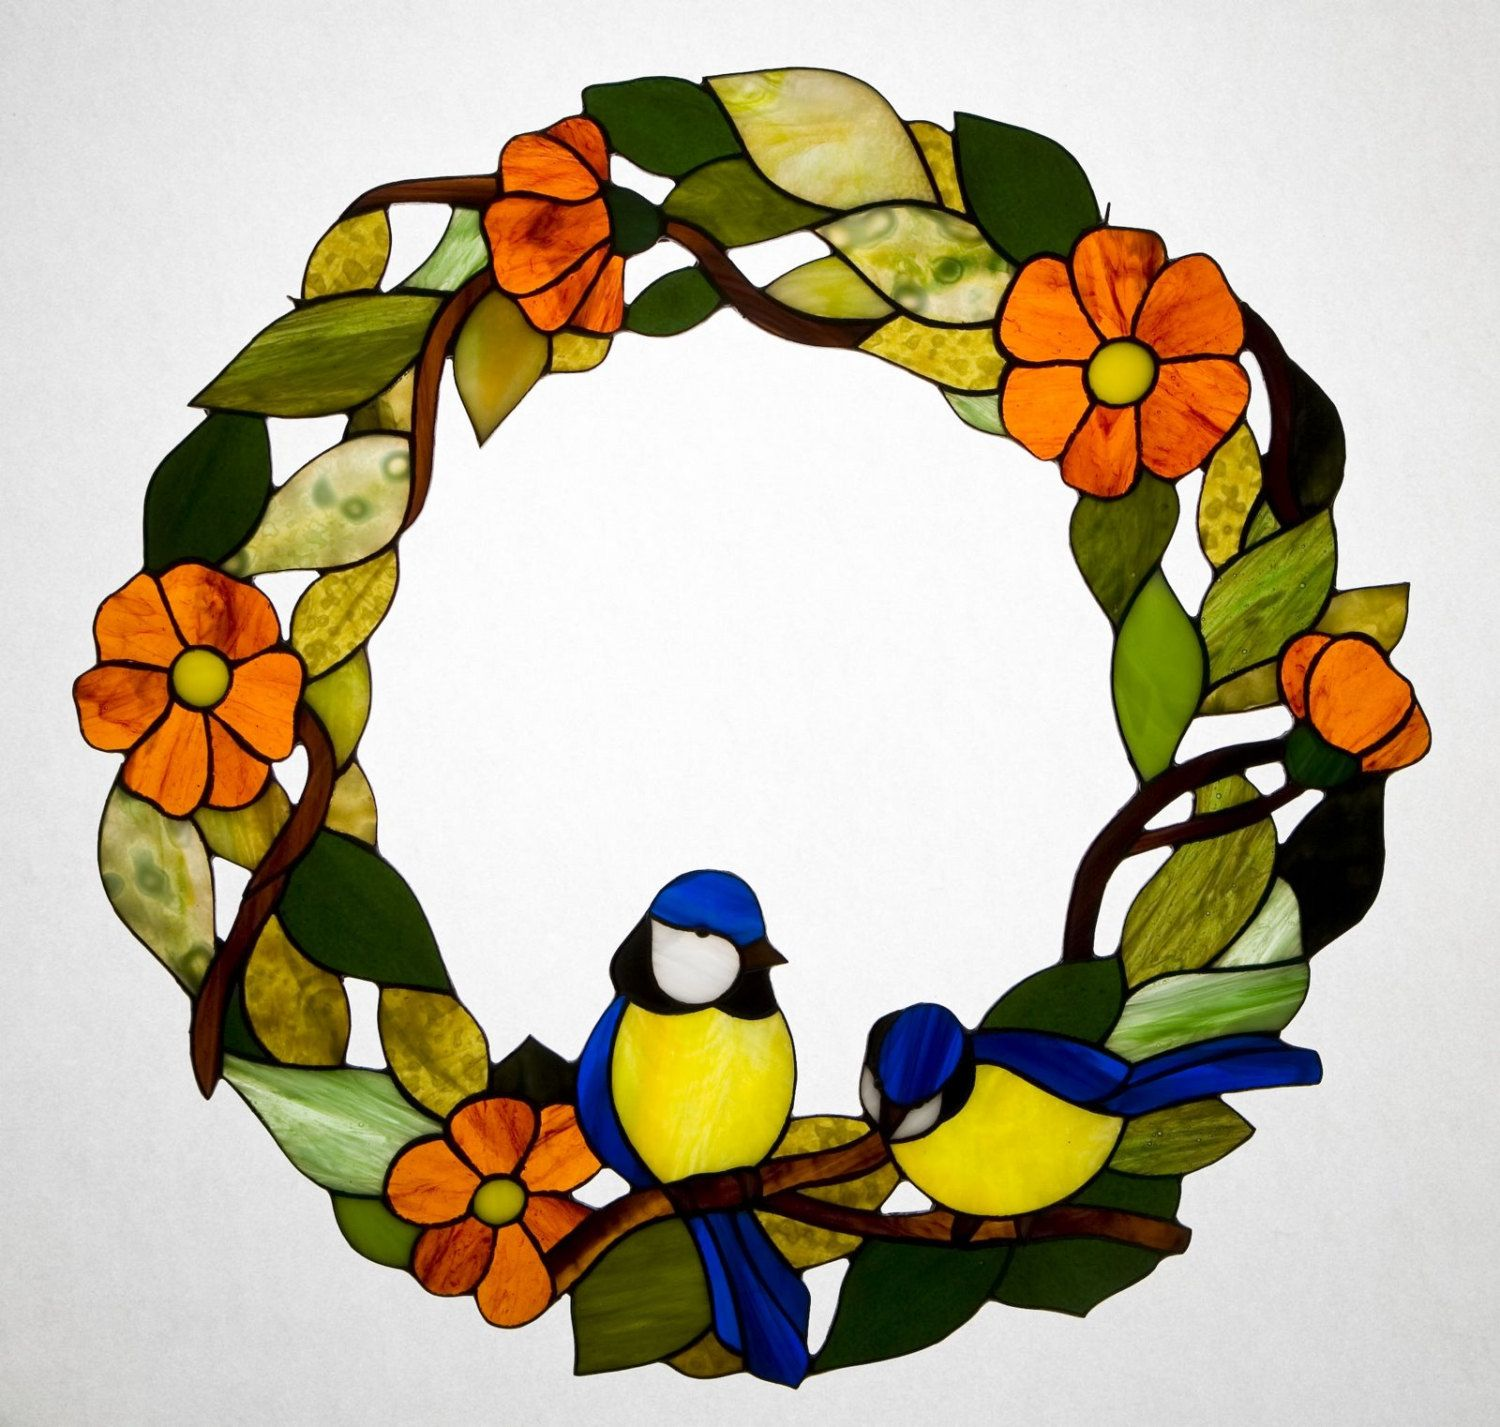 Floral Wreath With Great Tit Stained Glass Suncatcher, Birds Ornament,